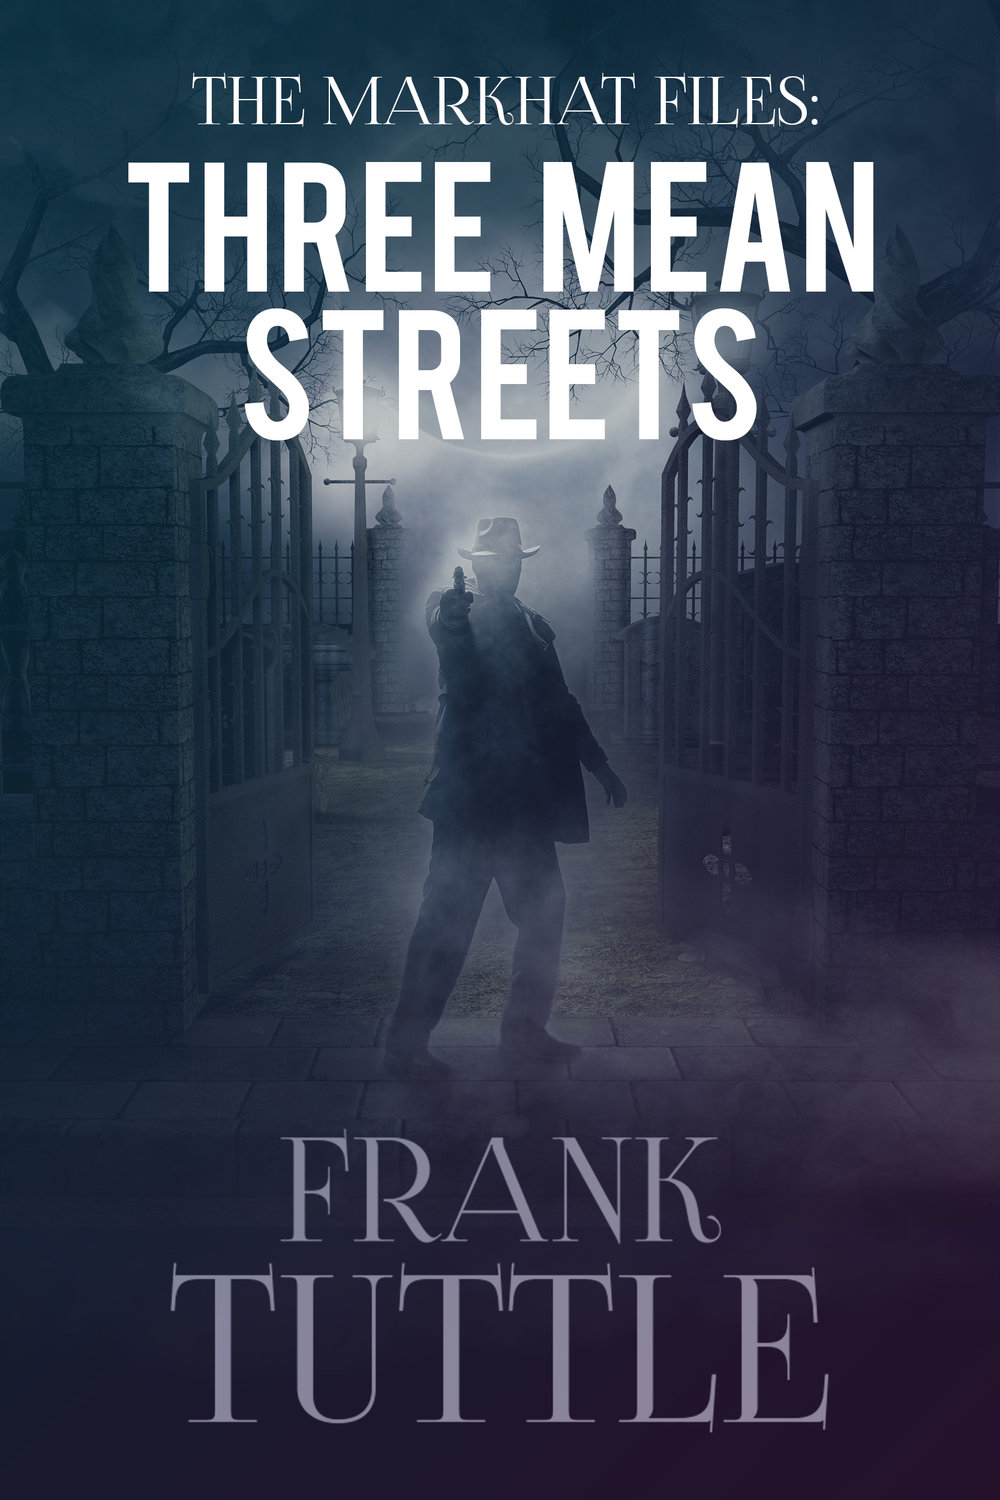 FT-These-Mean-Streets_1667x2500.jpg